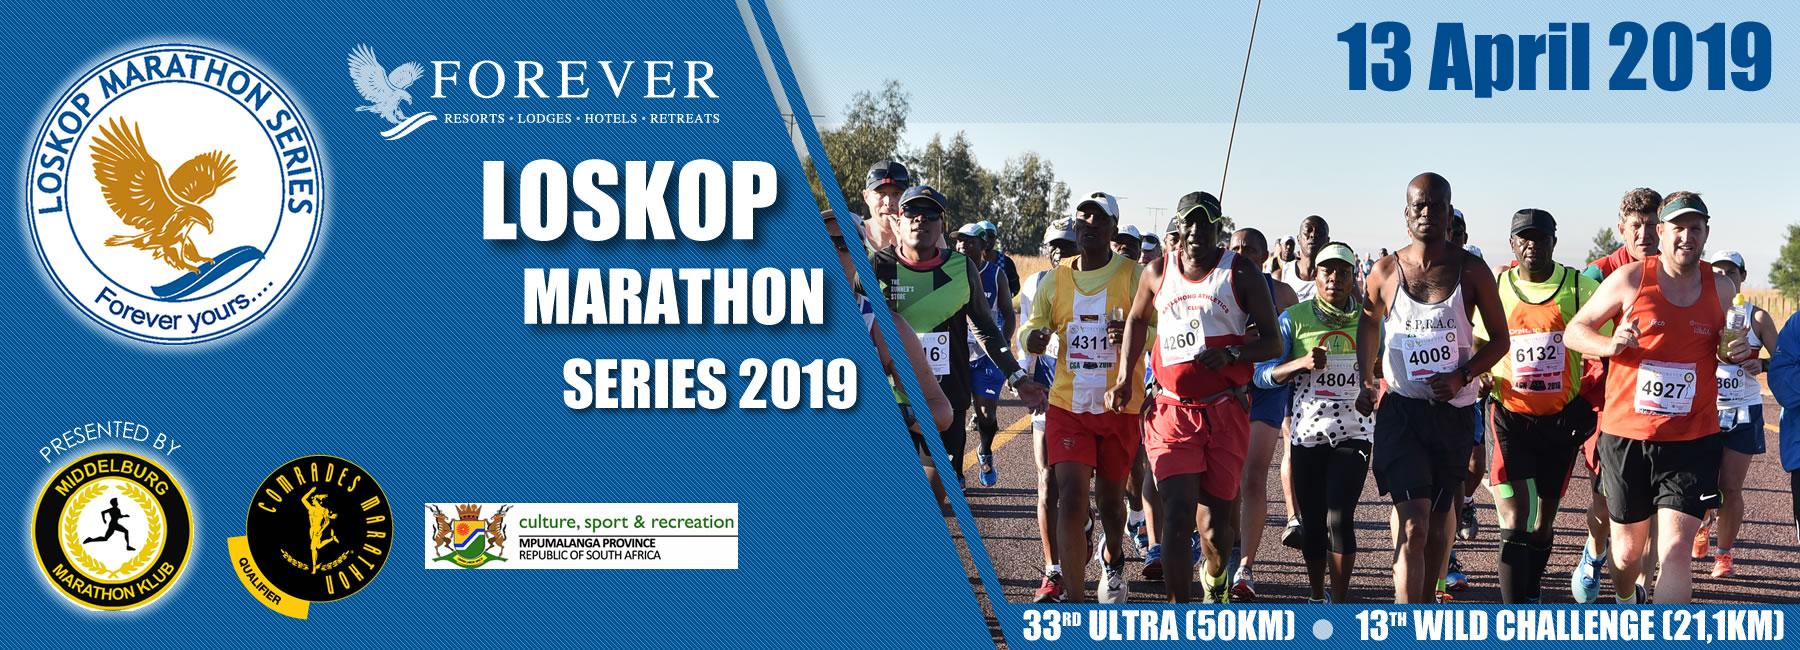 e5fd88f04c9 The 33rd Forever Resorts Loskop Marathon Series, presented by the Middelburg  Marathon Club, remains one of the best organised events on the South  African ...